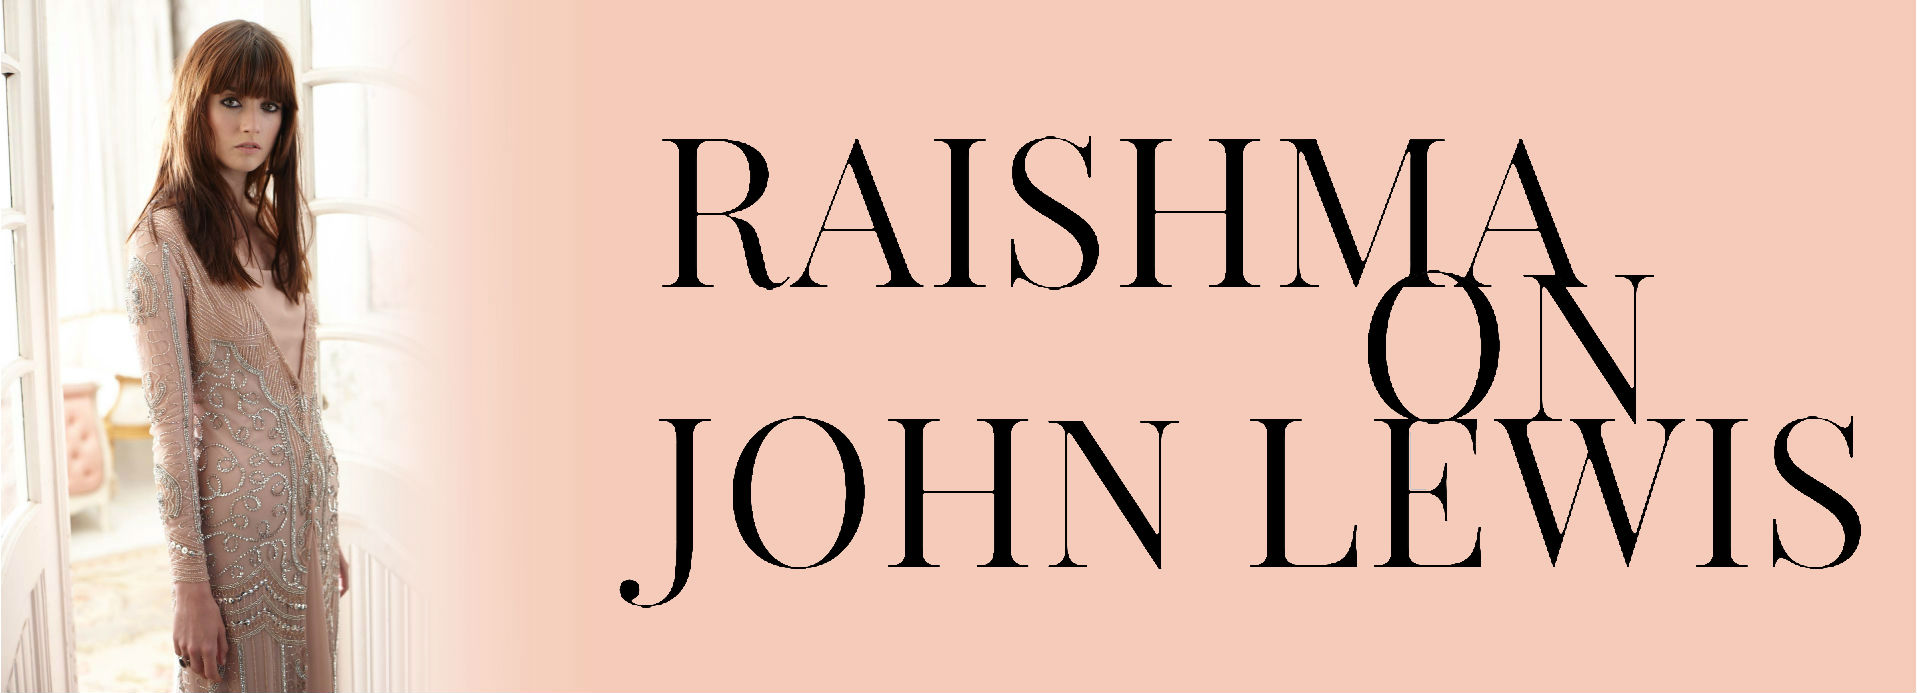 Raishma launches on John Lewis